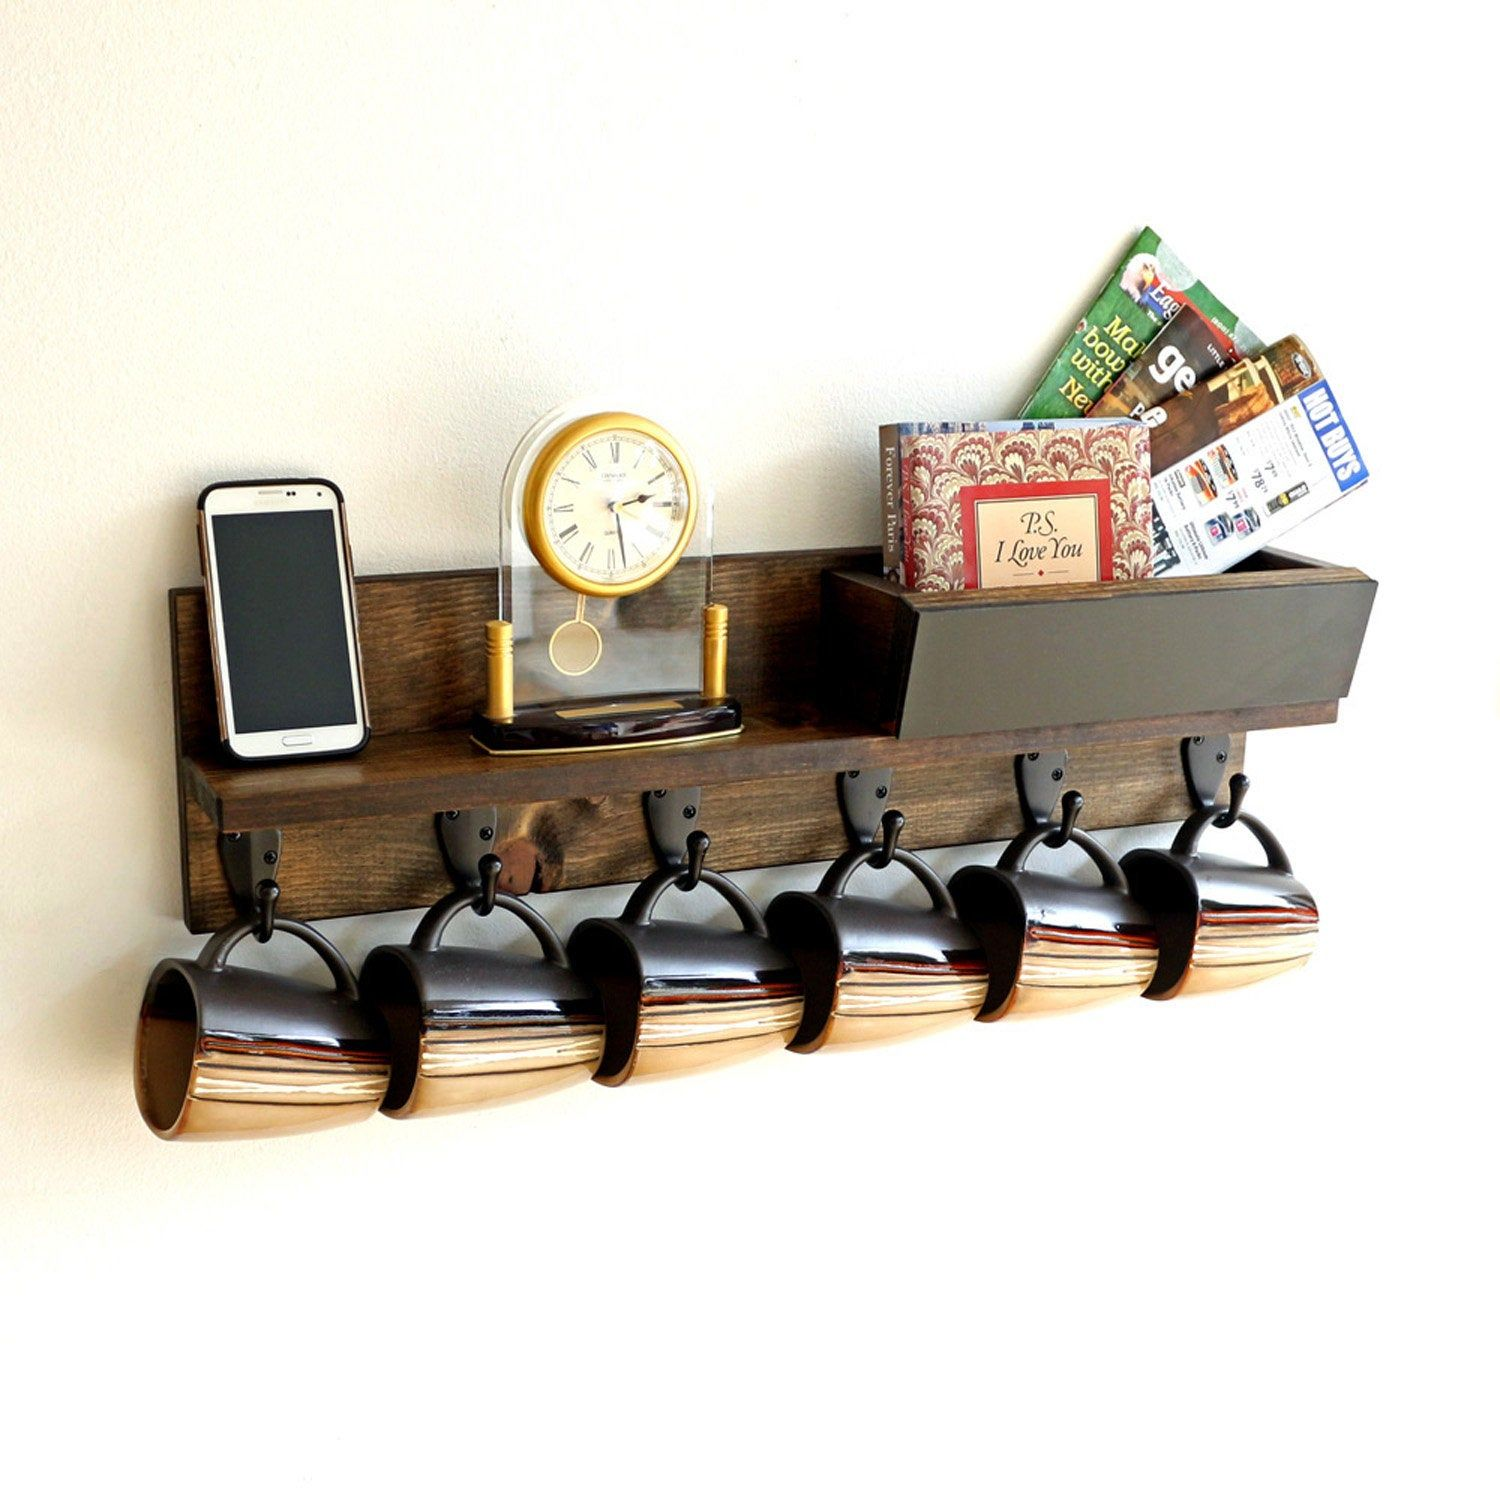 Rustic Wall Coffee Mug Rack Shelf | Mug/Cup Shelf Storage | Coffee Mug/Cup Holder | Kitchen Organizer | Unique